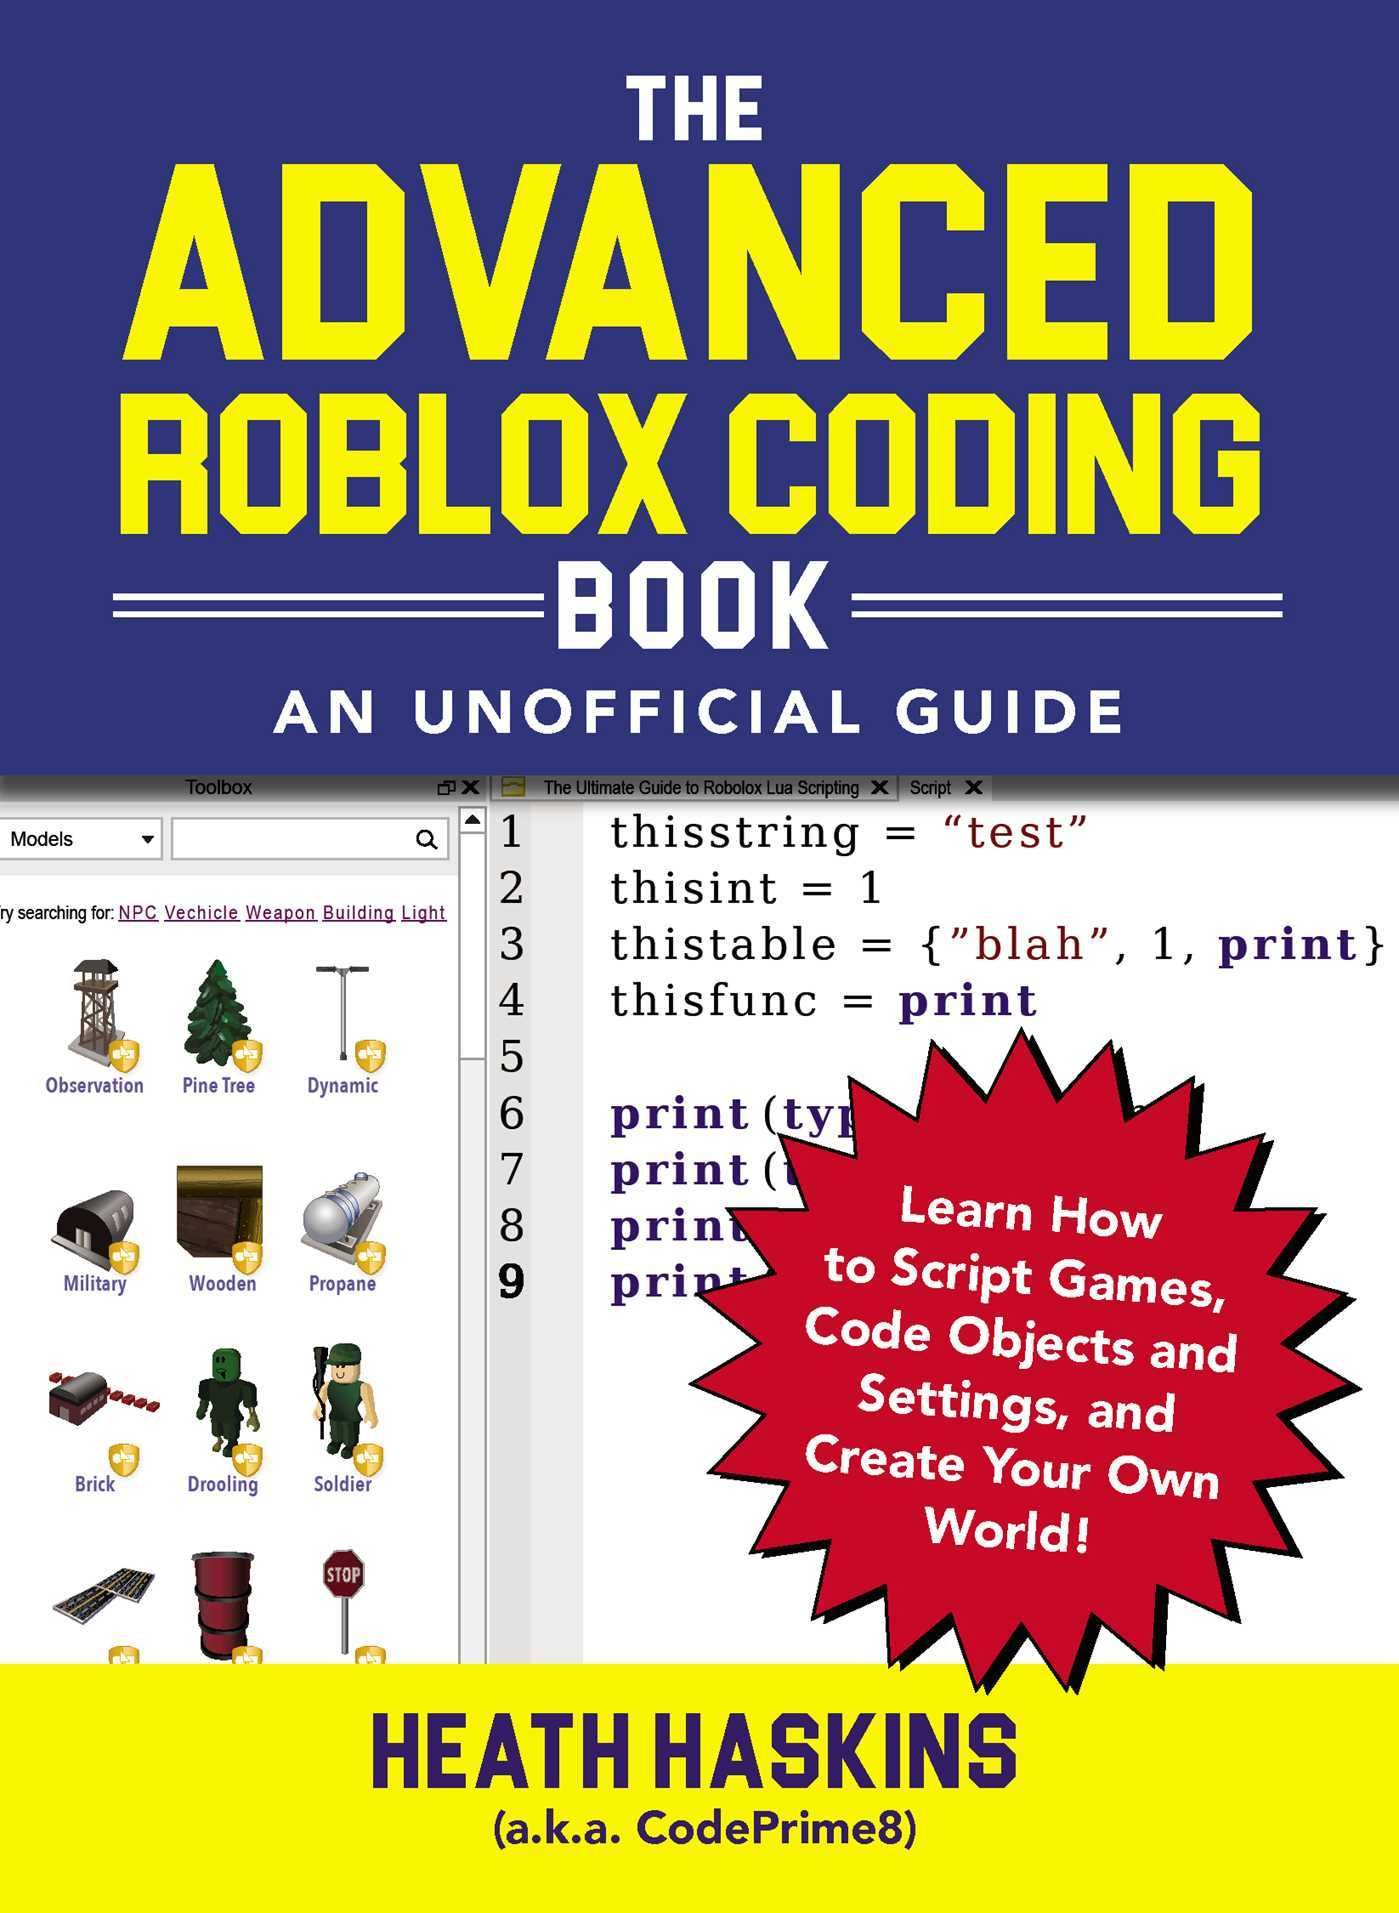 Pdf Download The Advanced Roblox Coding Book An Unofficial Guide Learn How To Script Games Code Objects And Settings Create Your Own World Roblox Coding